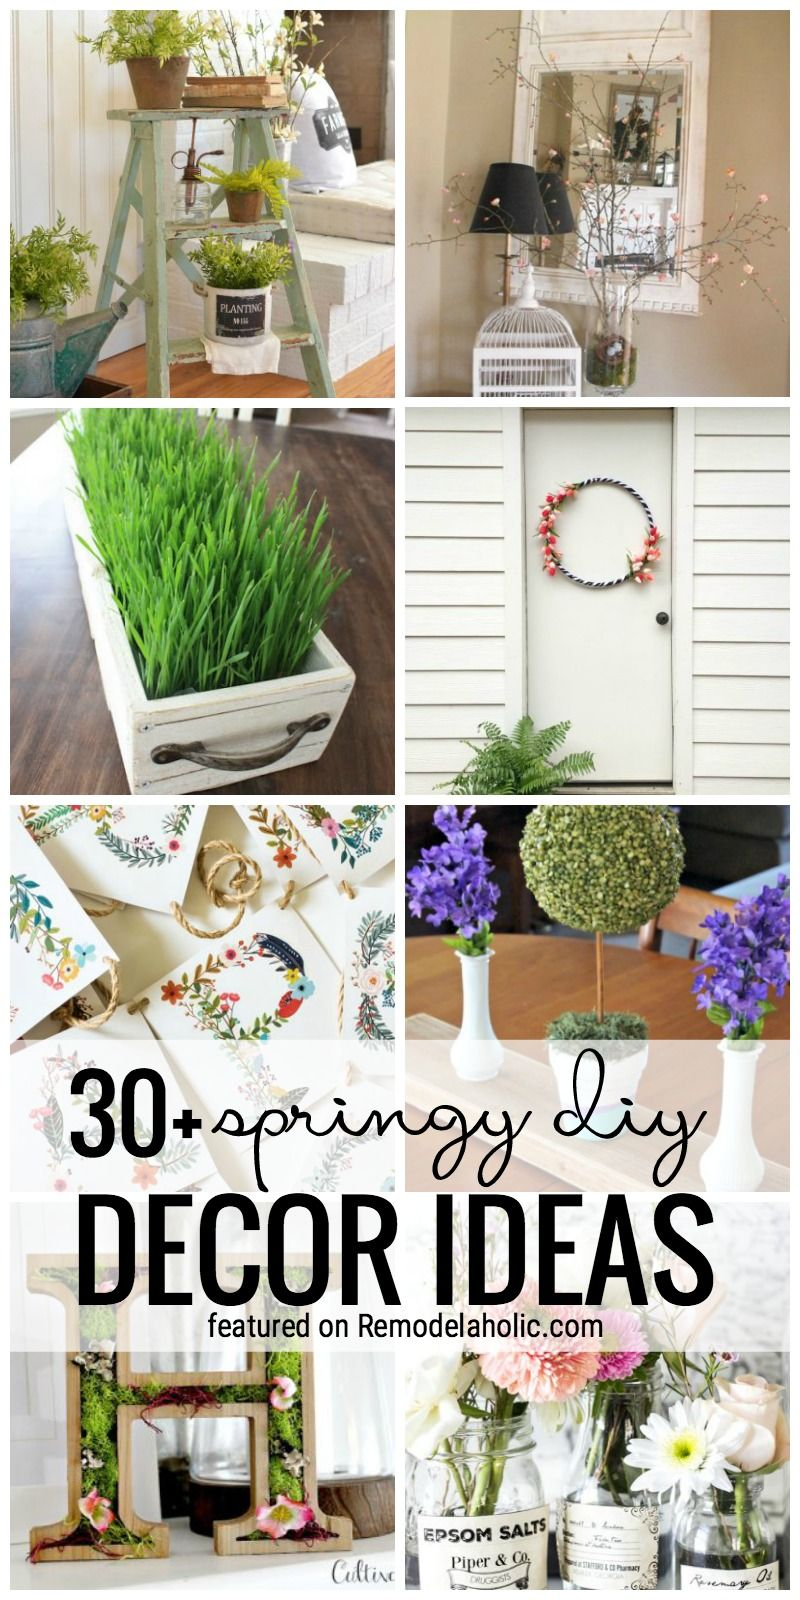 Garden decor craft ideas   Springy DIY Decor Ideas  Decorating Wood projects and Farm house